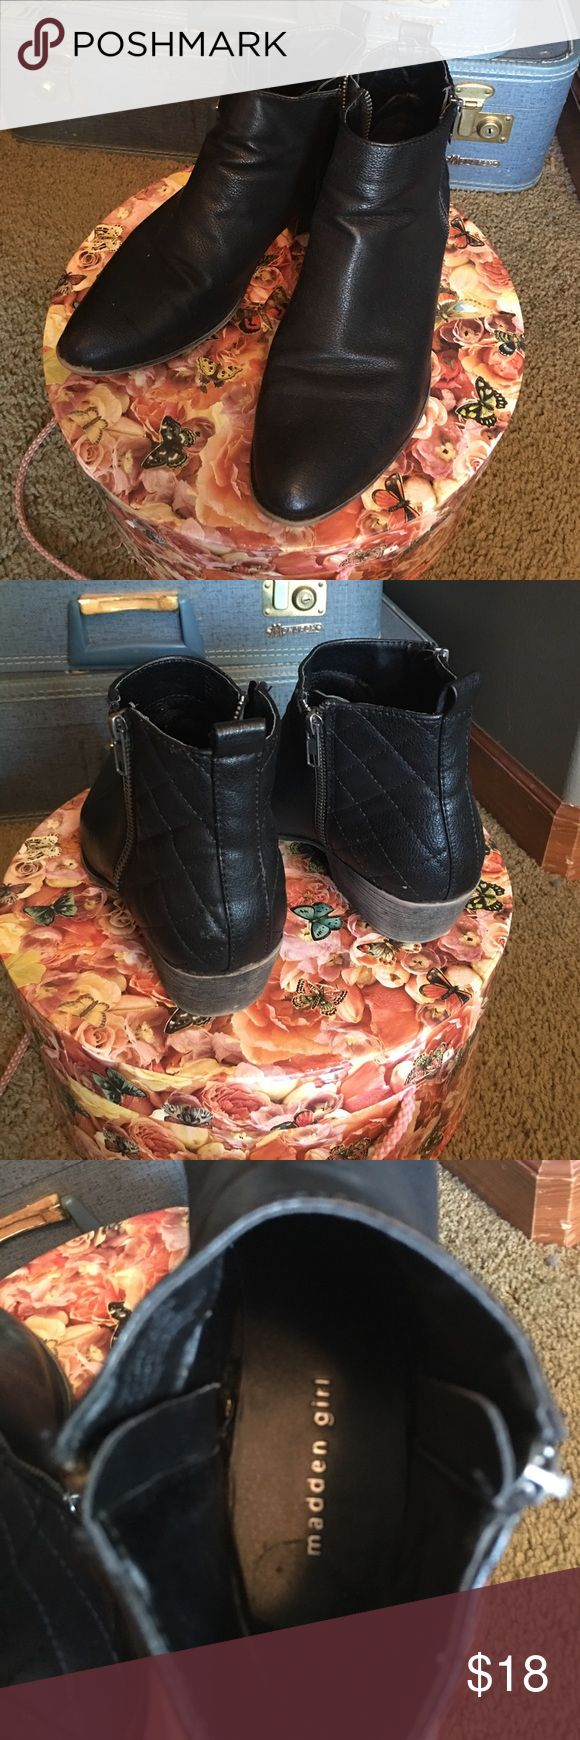 Madden Girl Double Zipper Boots MAKE AN OFFER. Steve Madden. Madden Girl. Double zipper boots. Well worn but still can be rocked. I just have too many pairs of black boots and need to slim down the line up. They have a cute quilted looking back on them. Little signs of wear. Black with silver zippers. Steve Madden Shoes Ankle Boots & Booties